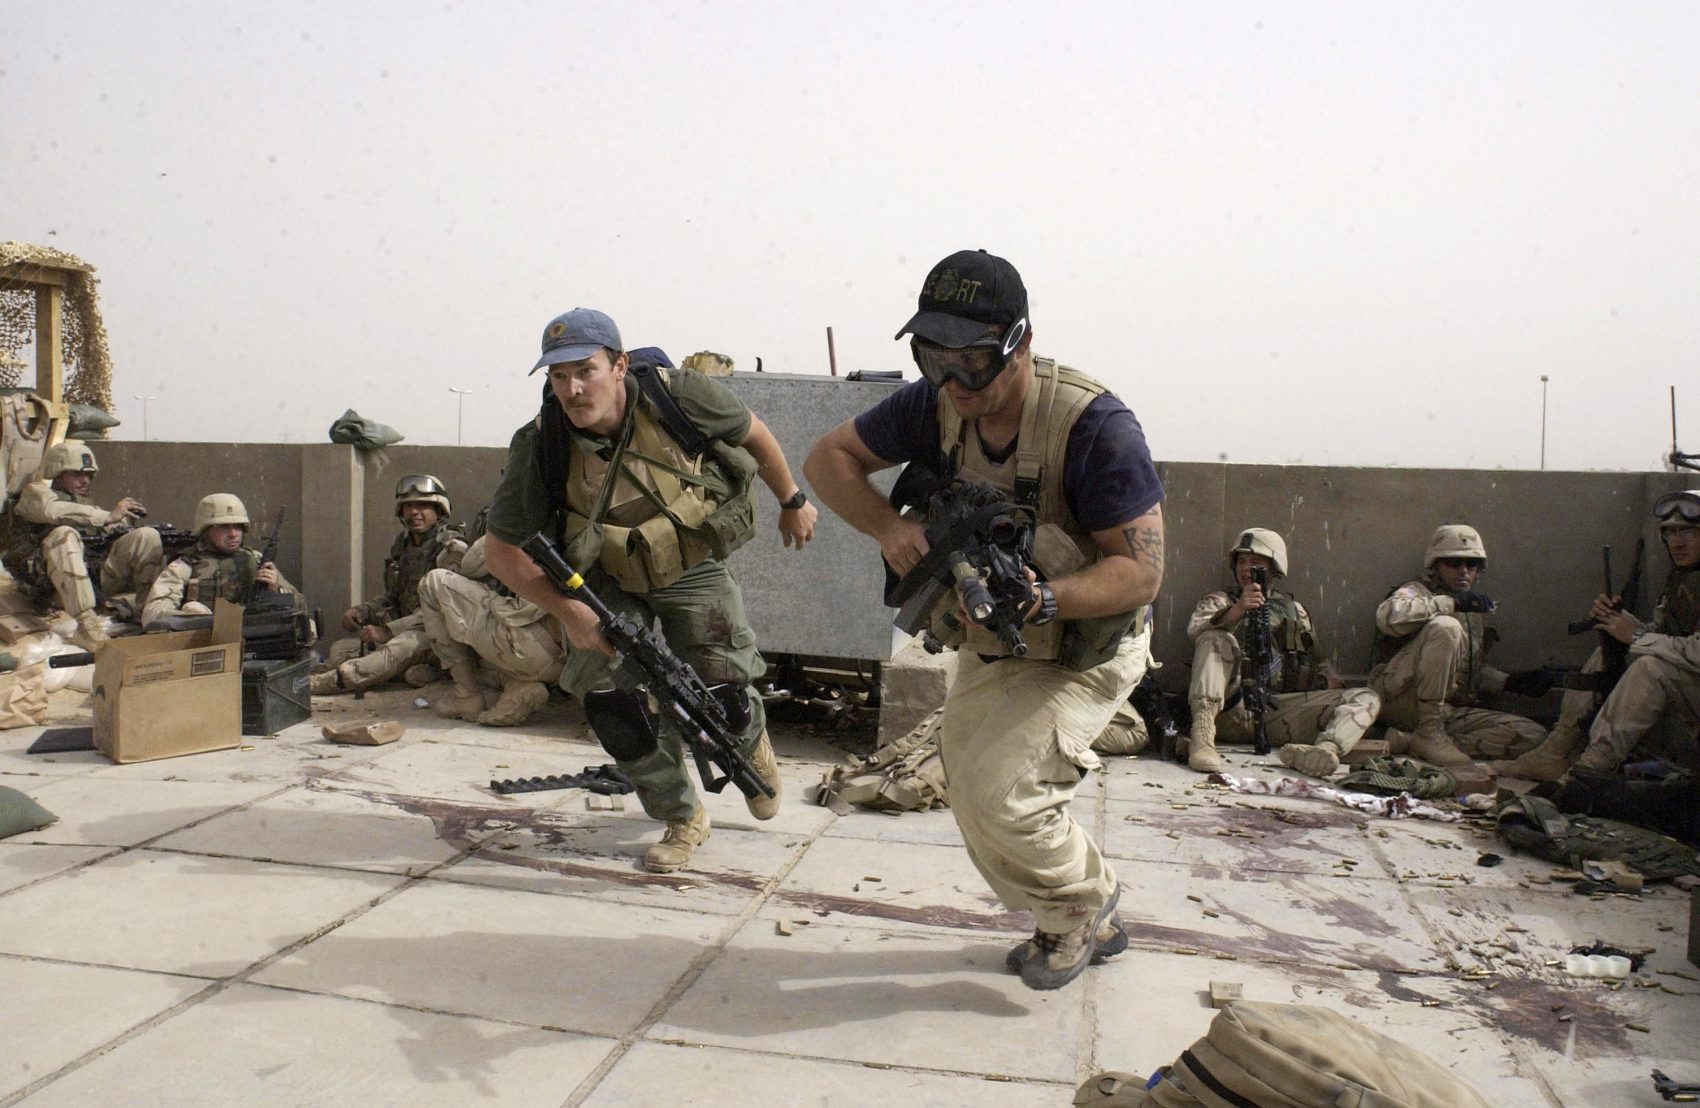 Contractors working for Blackwater USA take part in a firefight in the Iraqi city of Najaf in April 2004. (Gervasio Sanchez/AP)